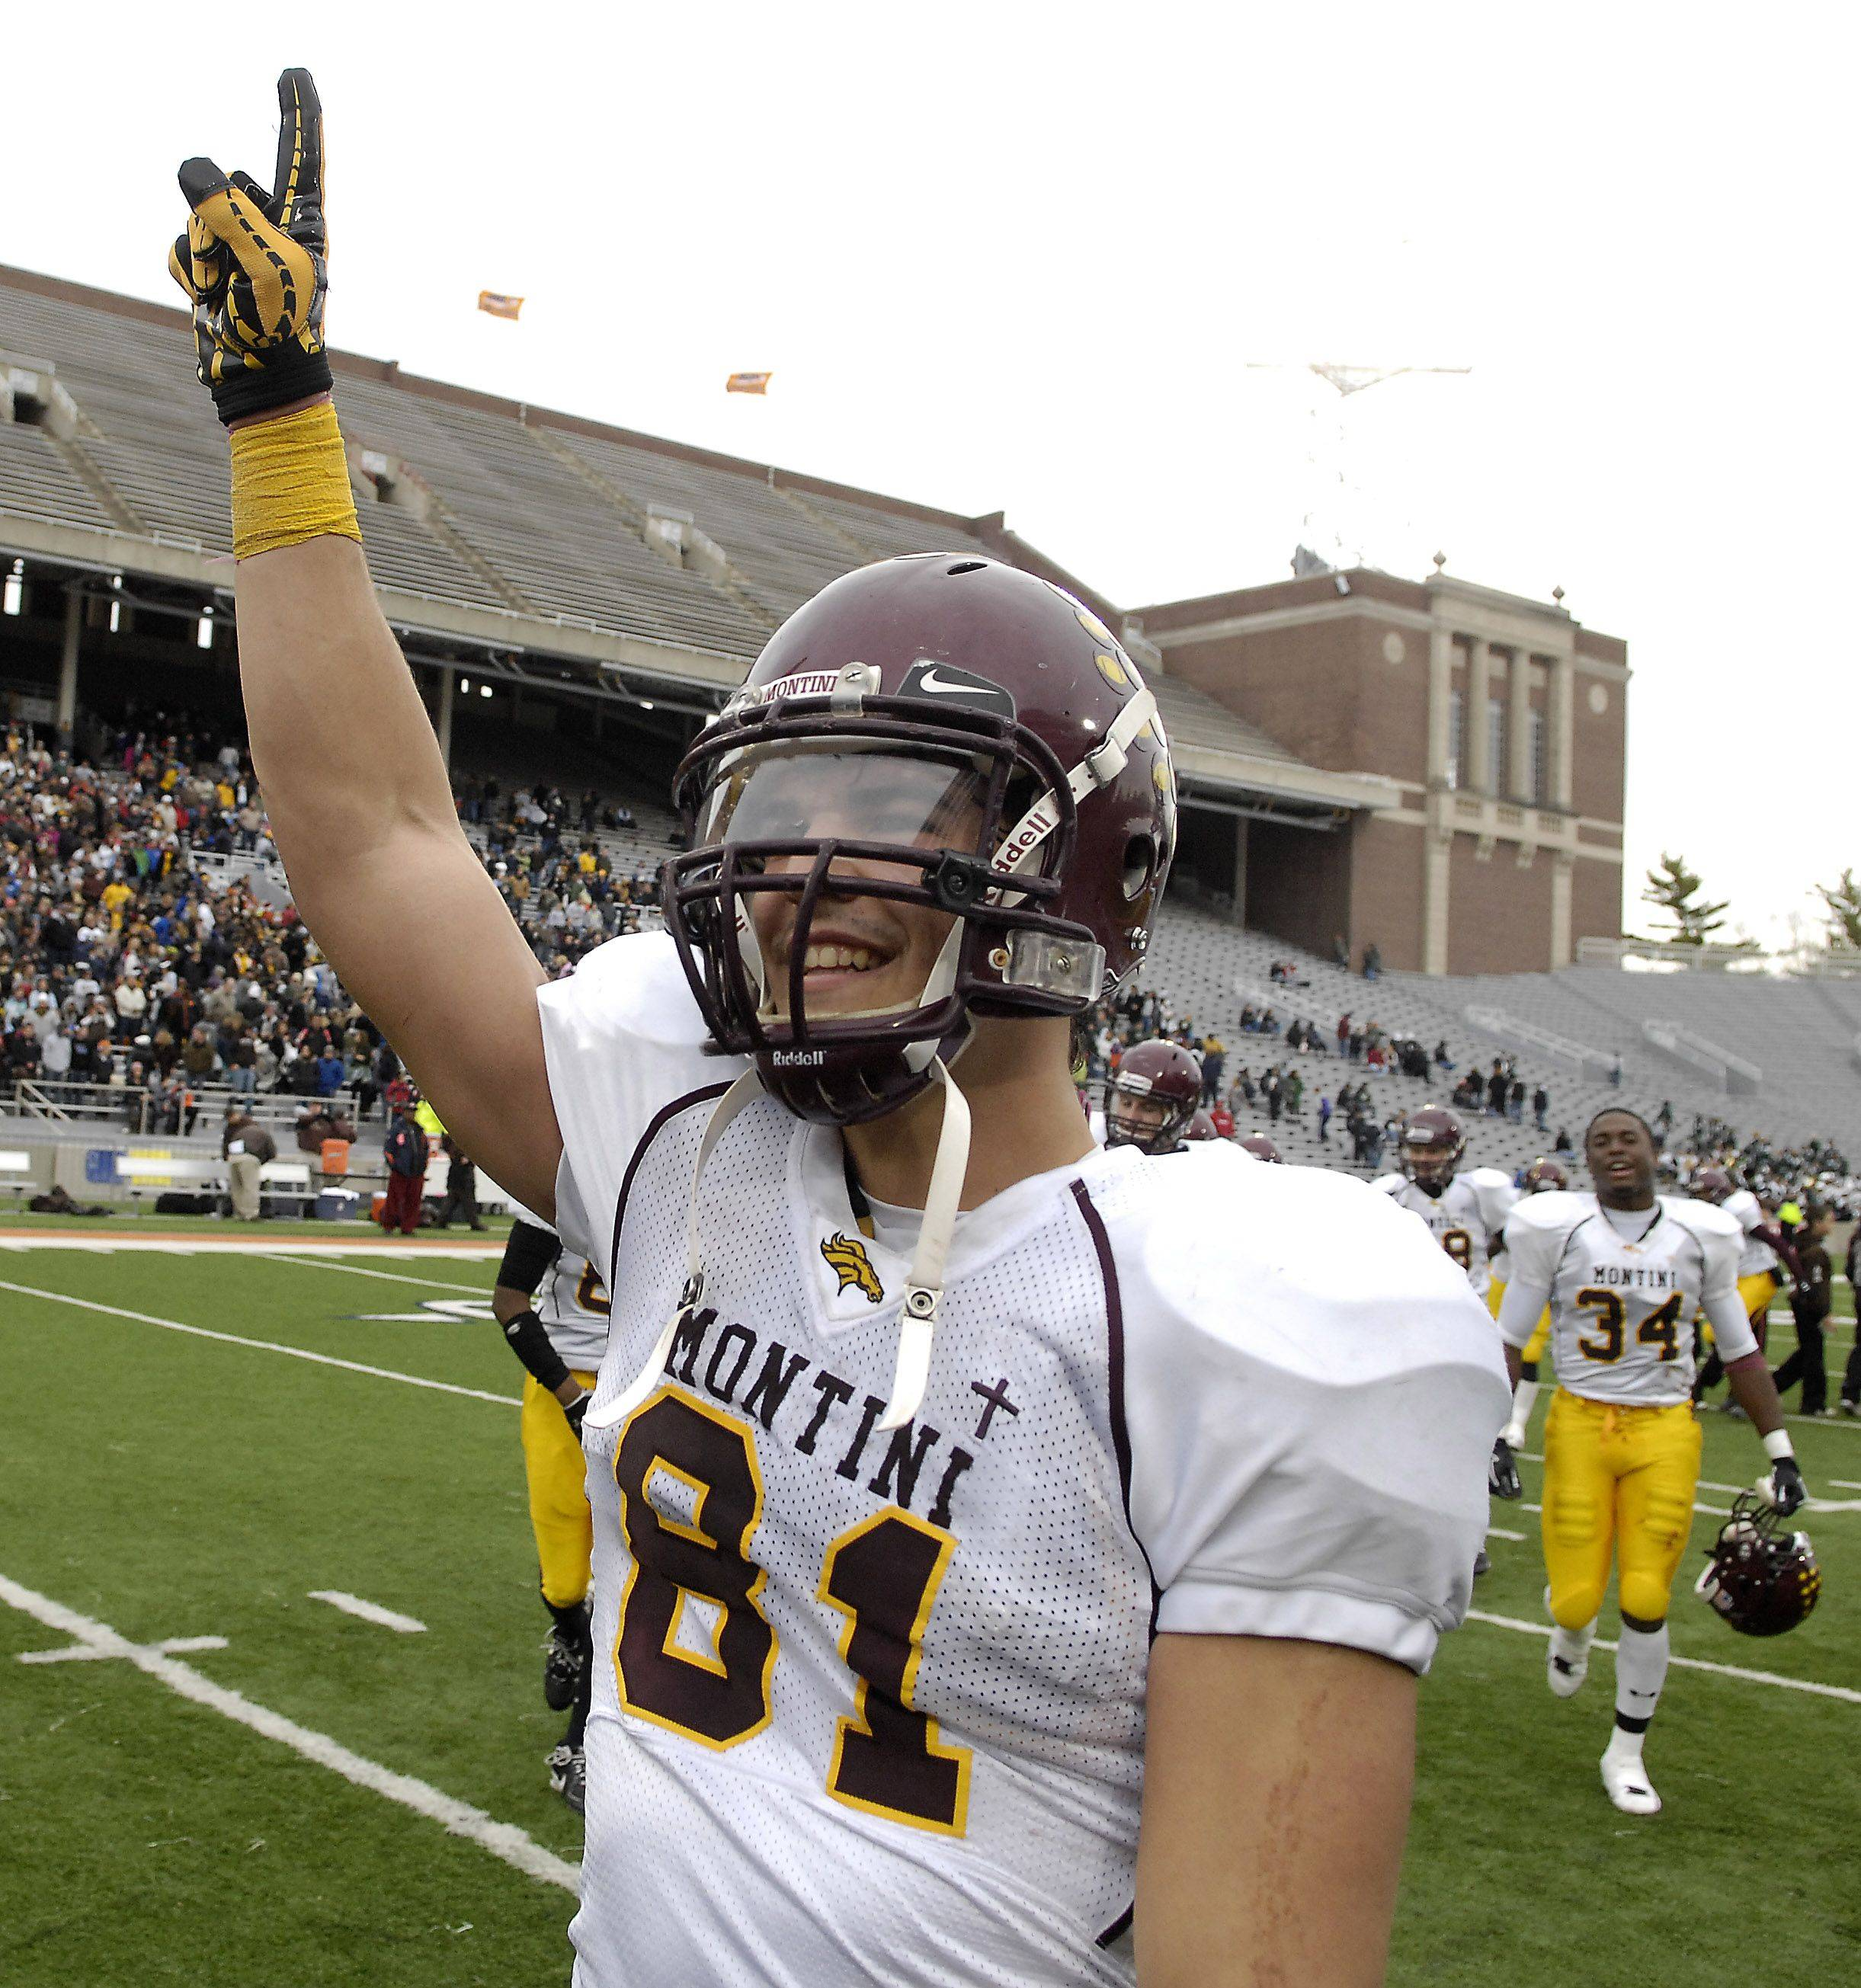 Jordan Westerkamp raises a triumphant hand after he and Montini beat Joliet Catholic 70-45 during the Class 5A state championship in Champaign on Saturday.